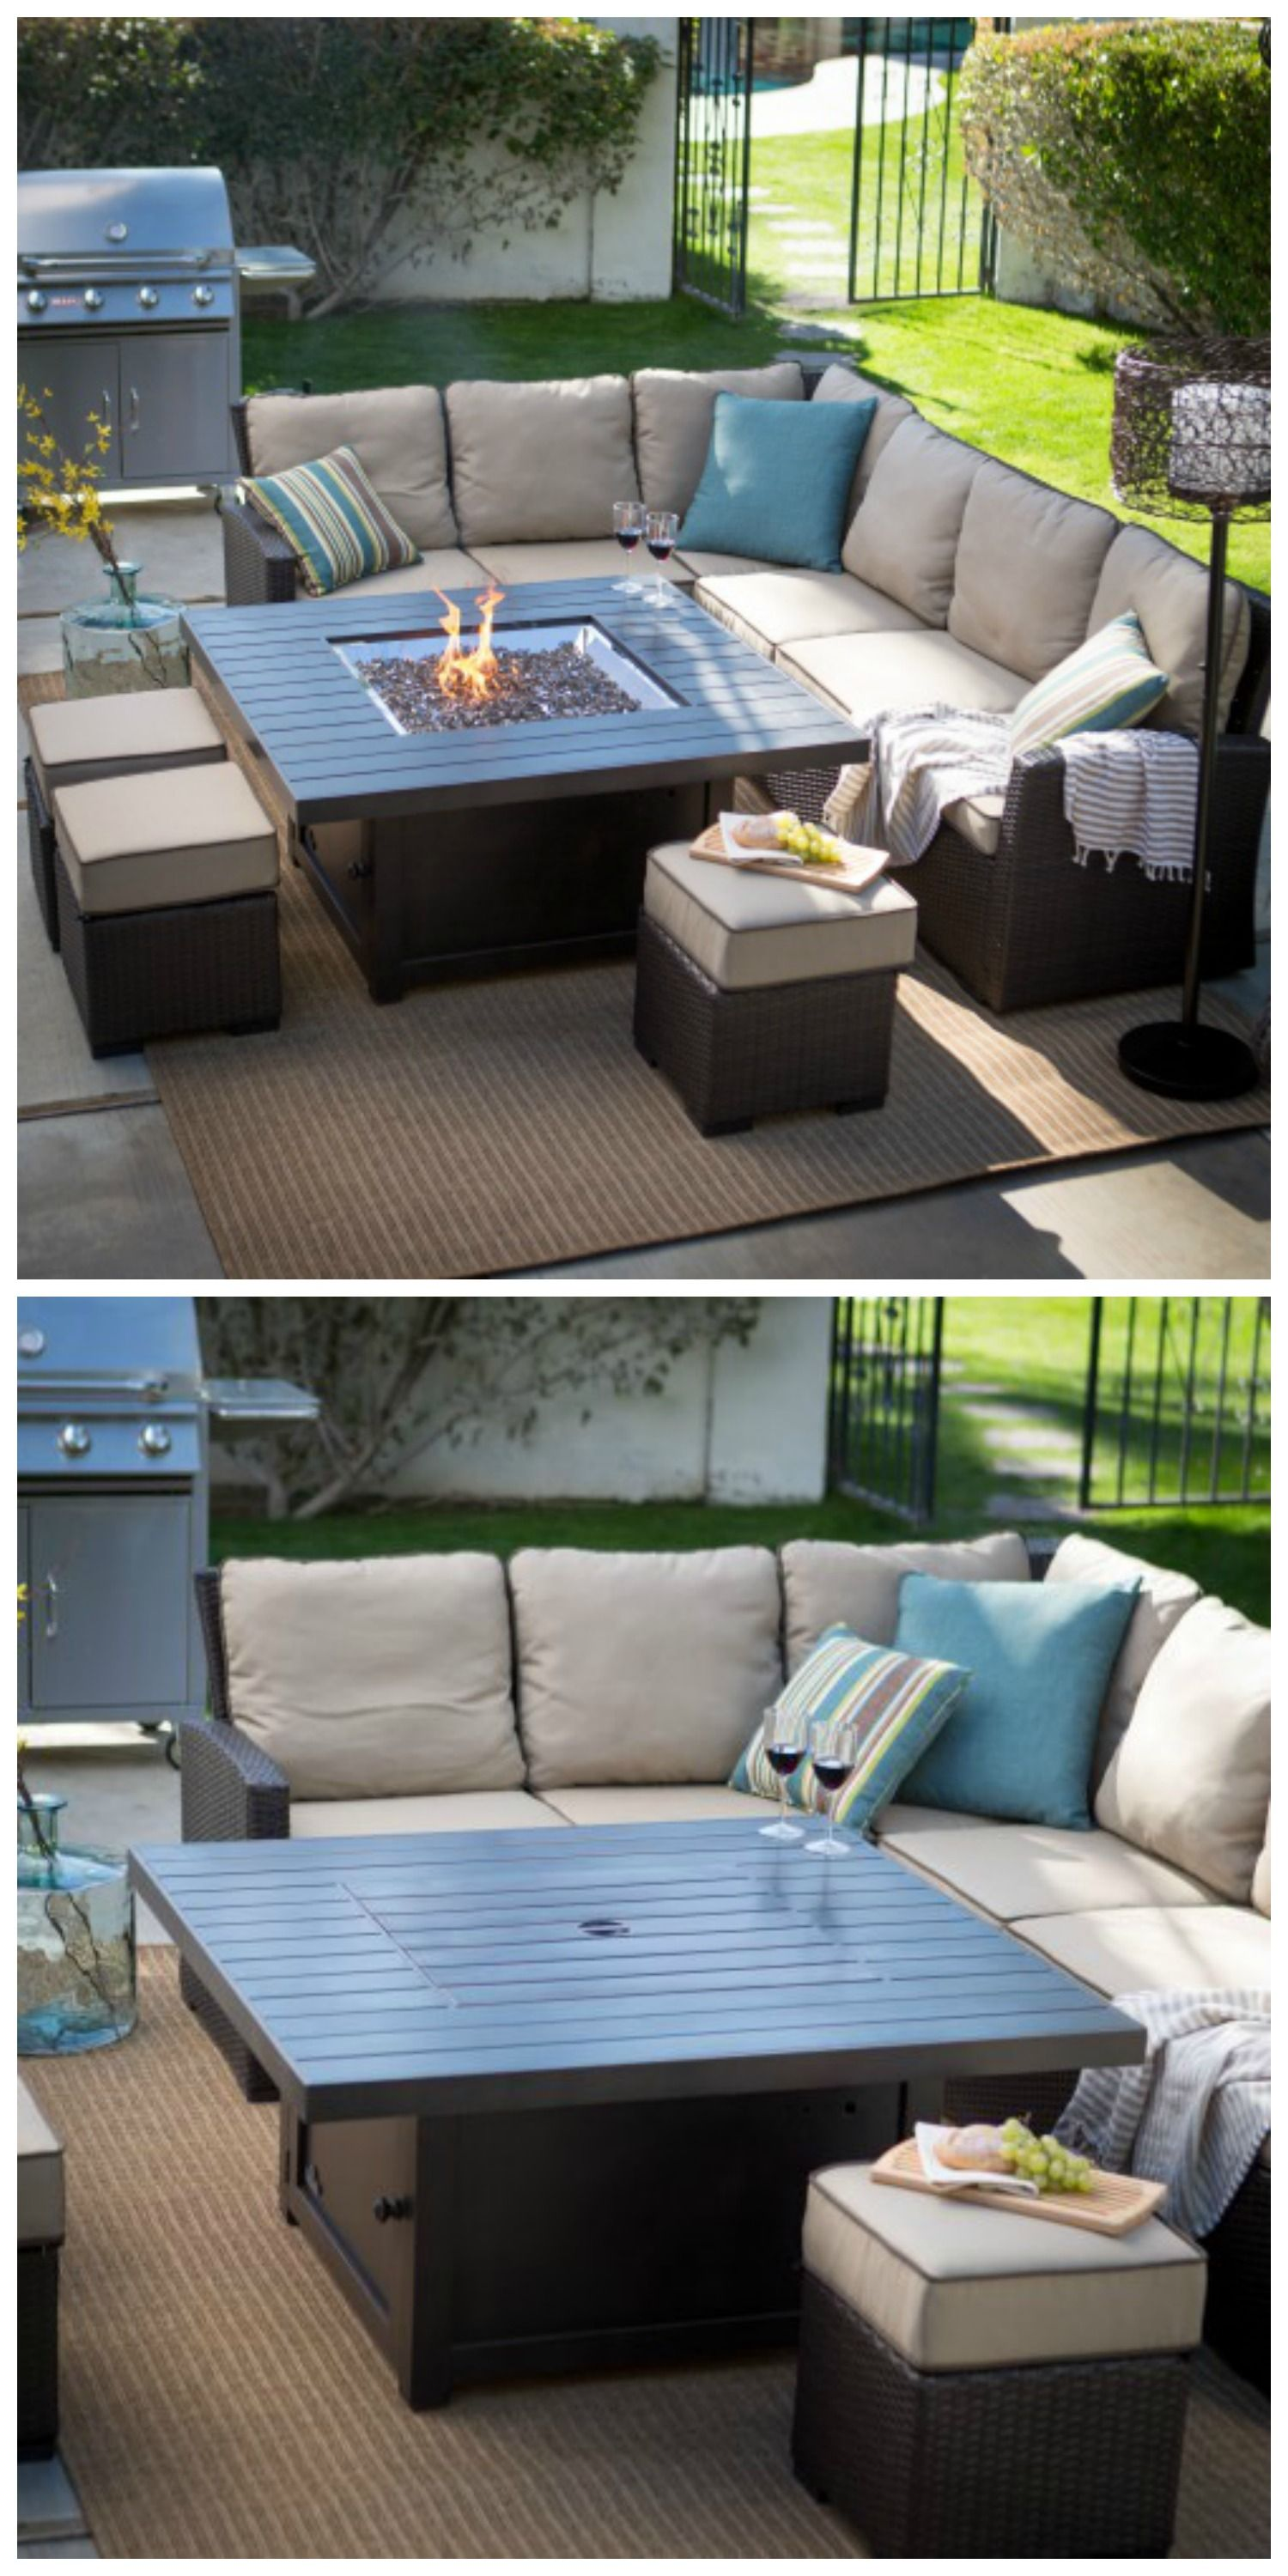 Could Go Well On The Loft Deck Table Is Pretty Cool But Would Need To Figure Out With Drain